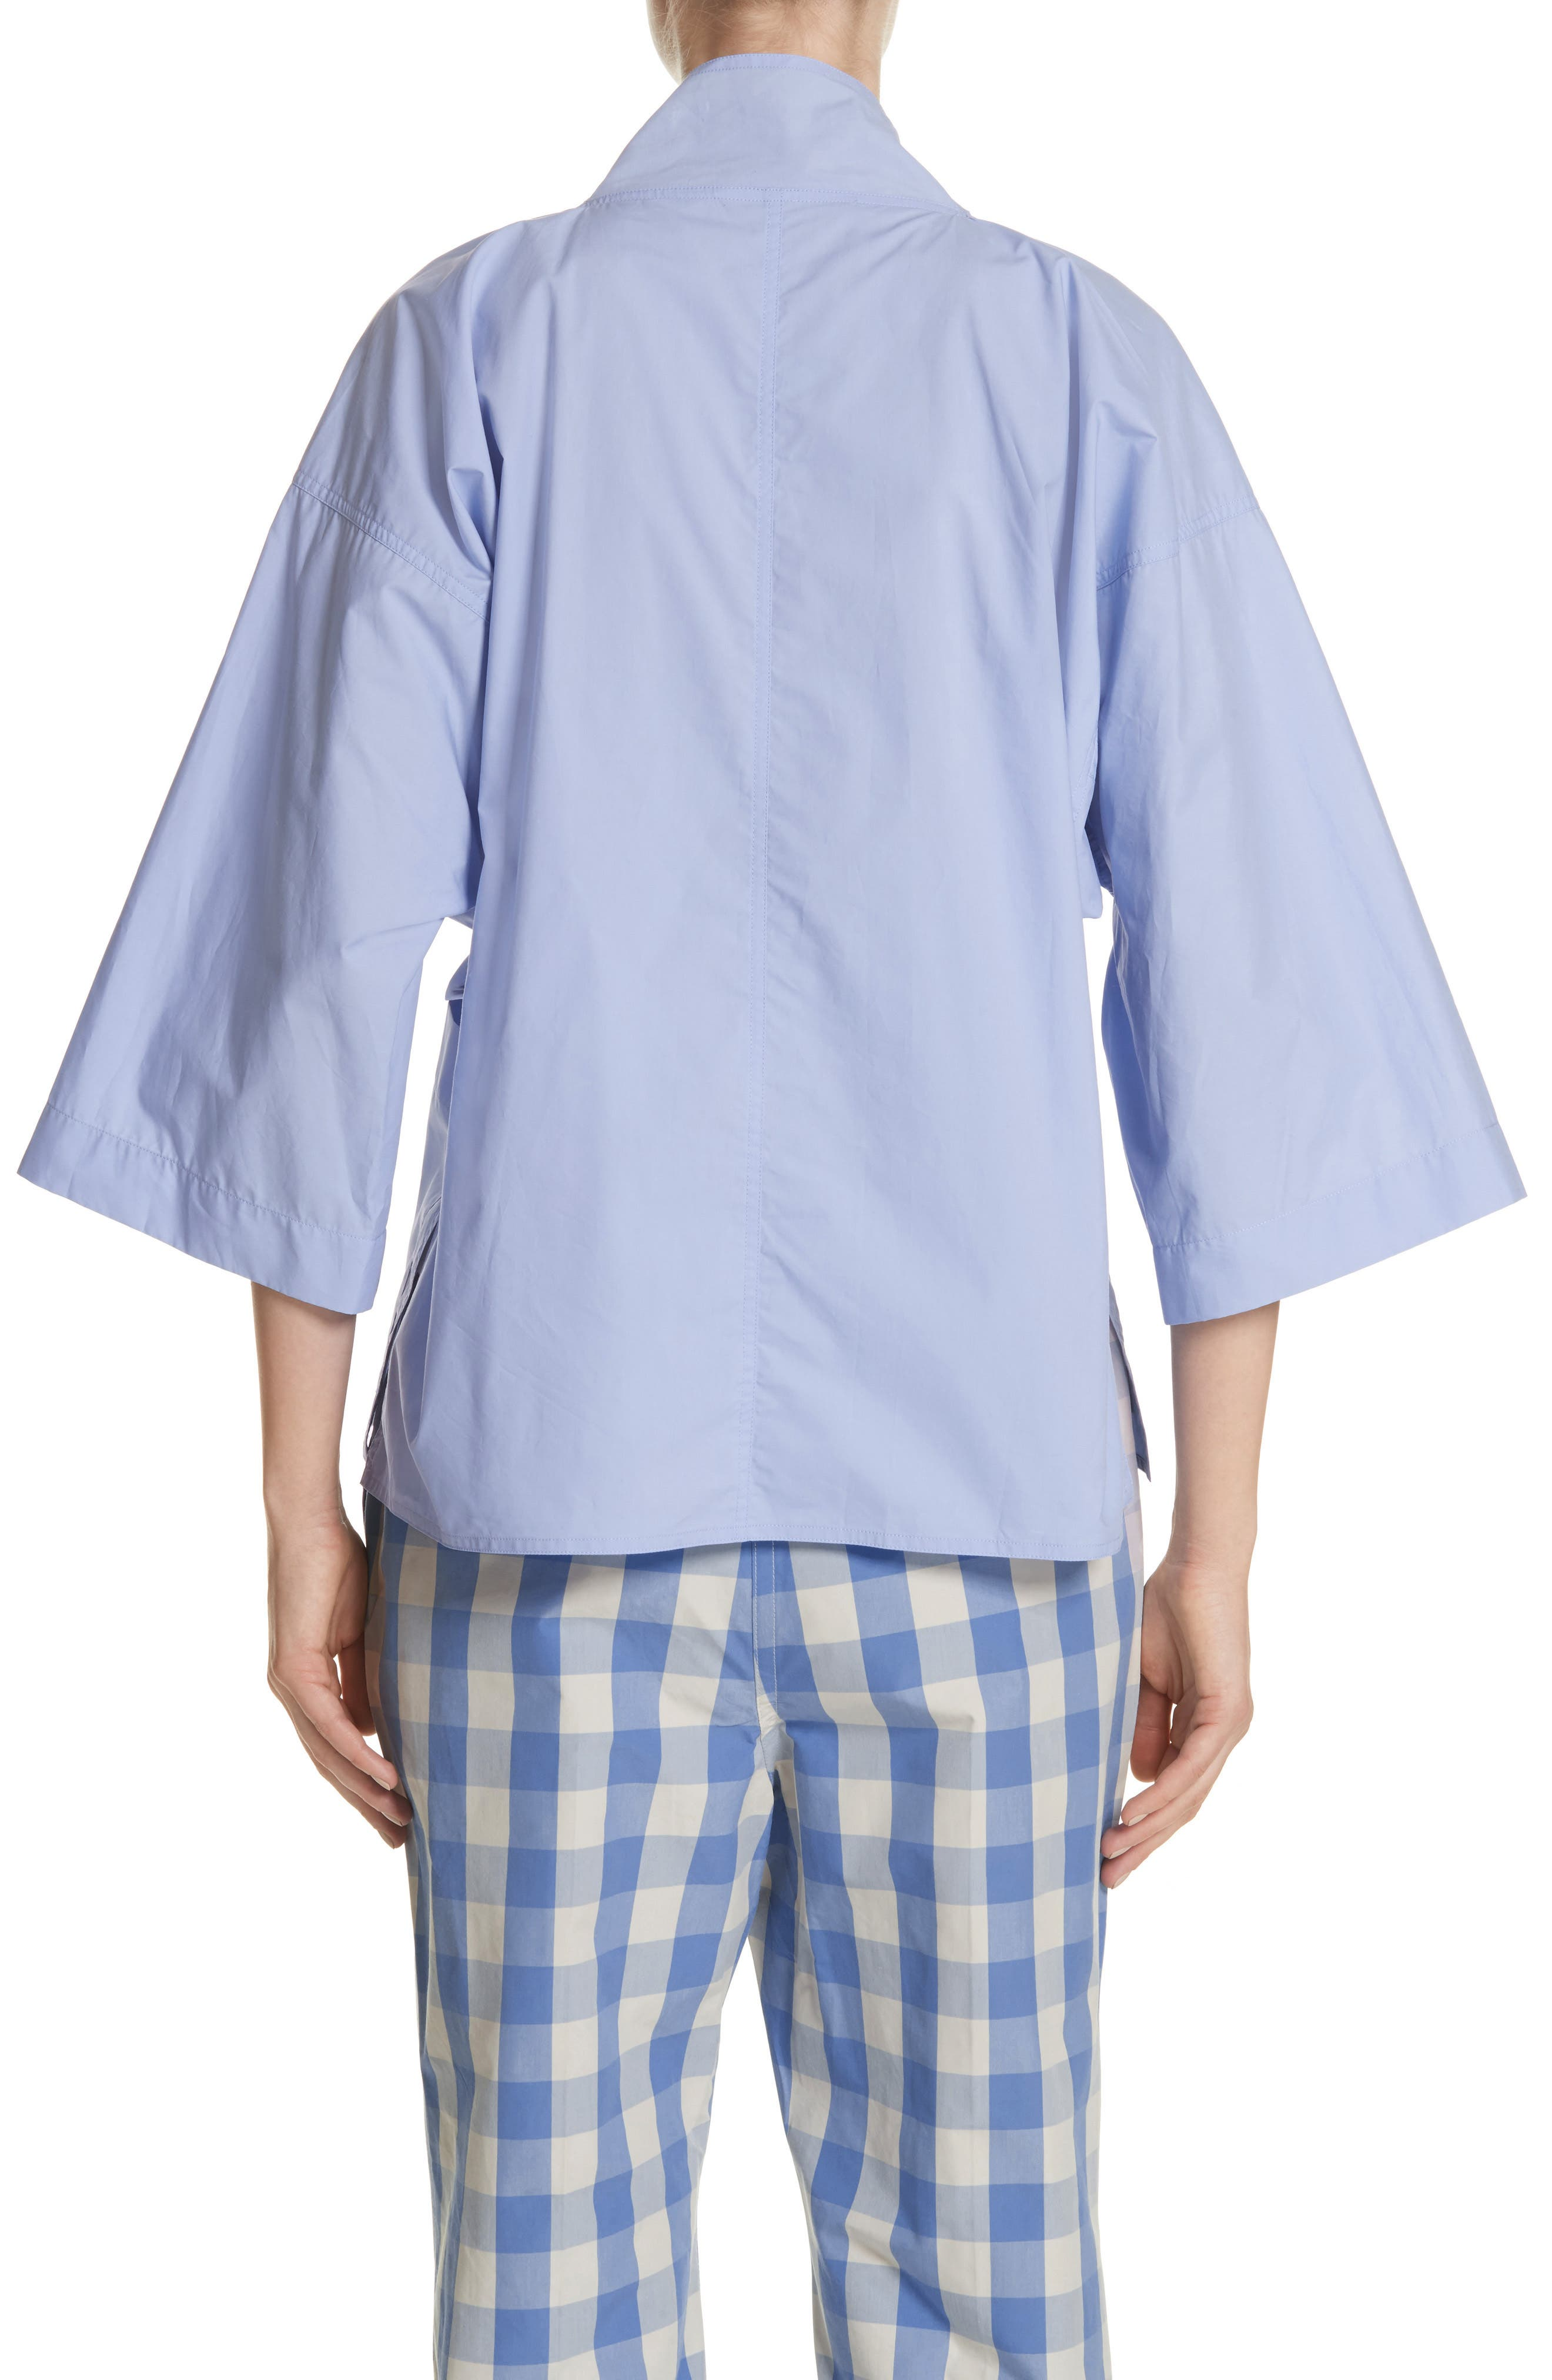 Belted Blouse,                             Alternate thumbnail 2, color,                             400